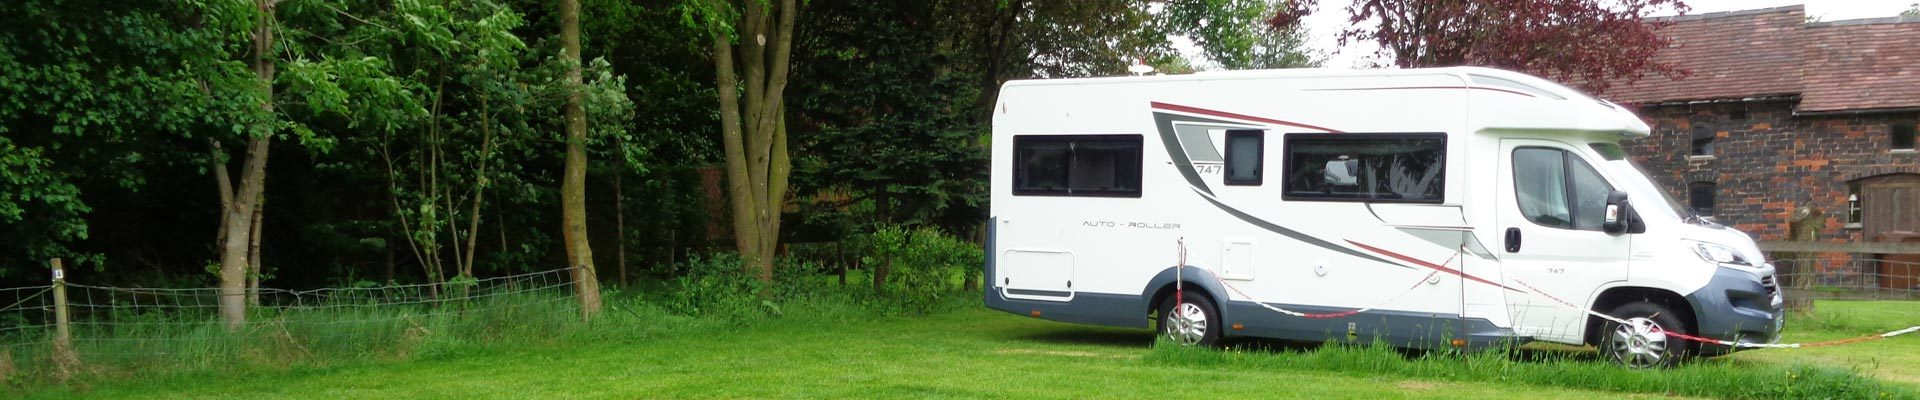 Motorhome Rentals West Midlands